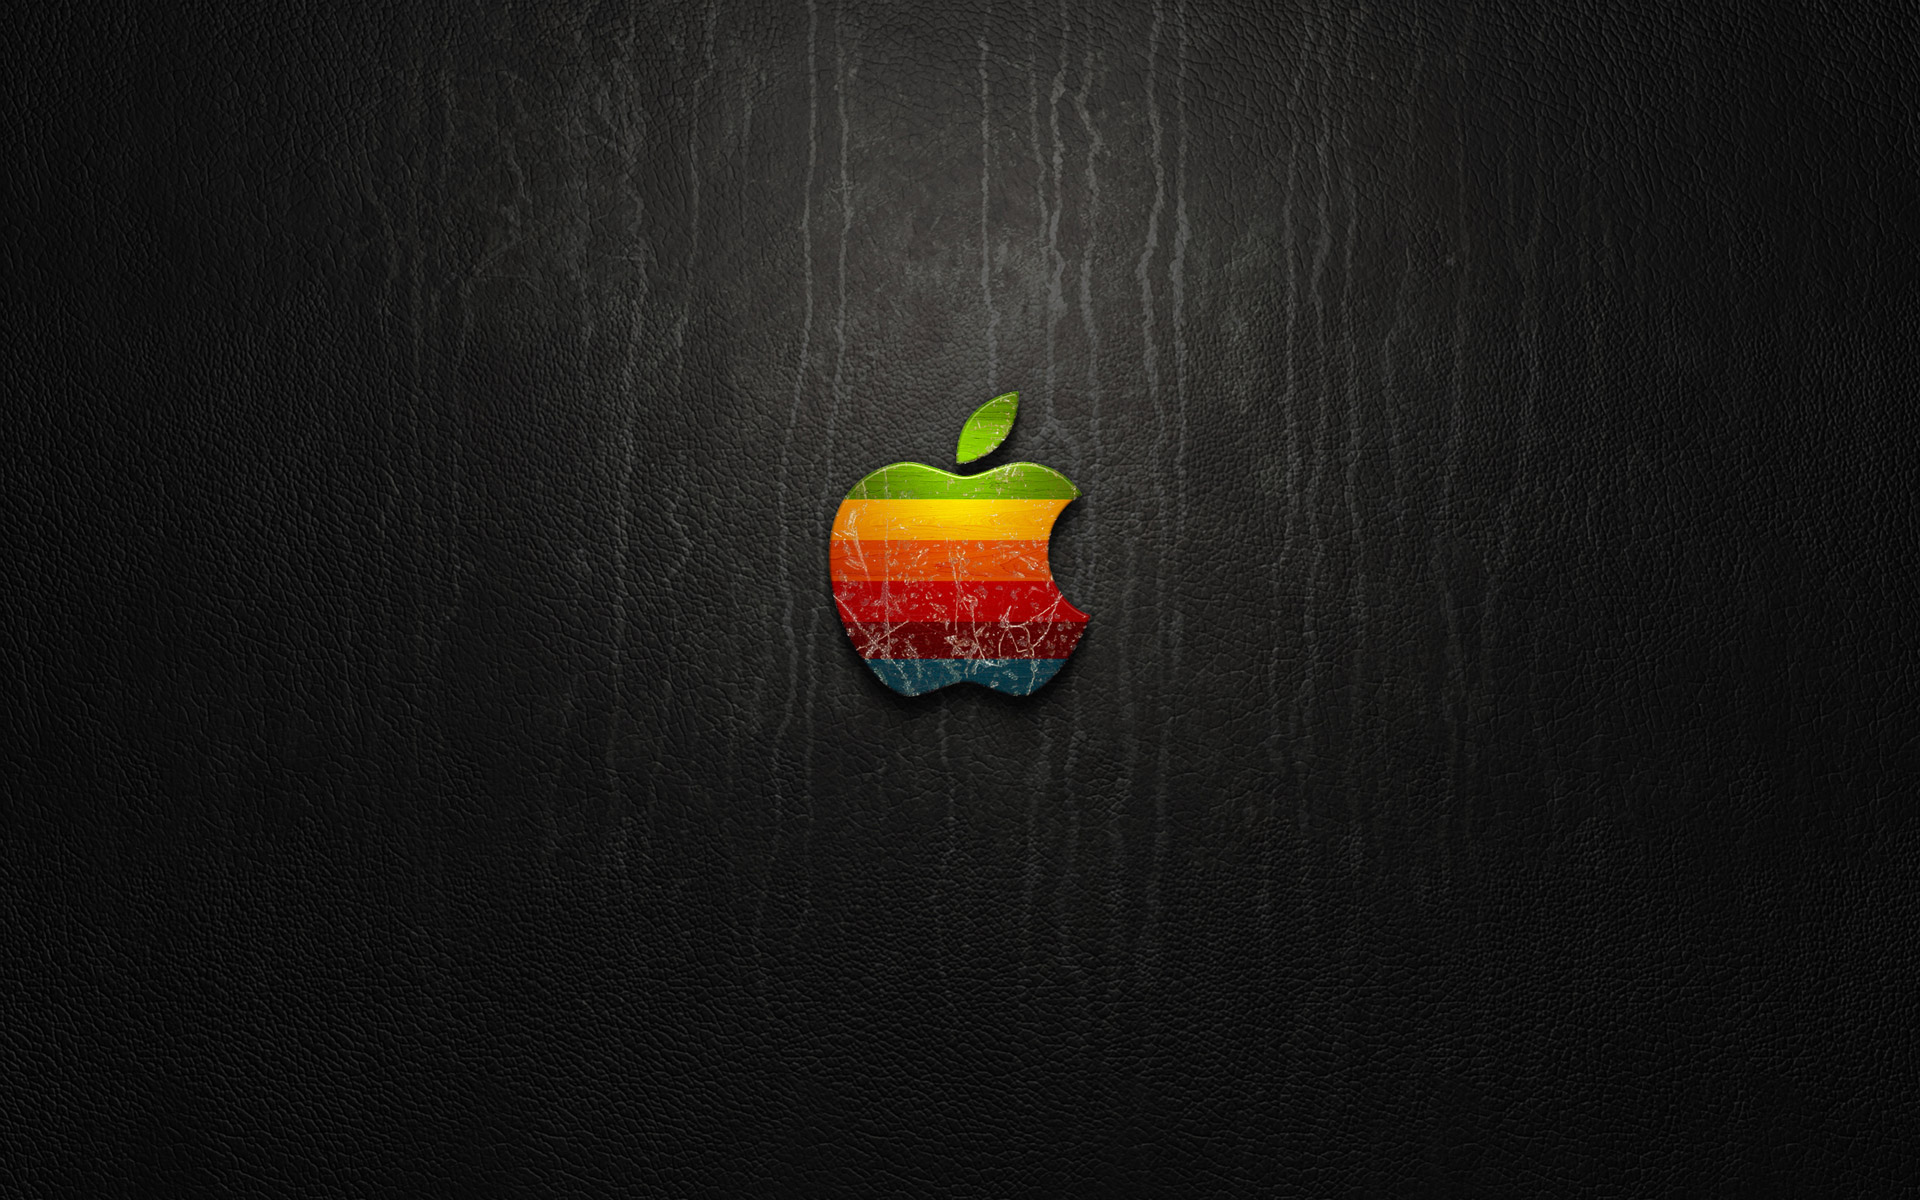 The Apple logo on the leather texture